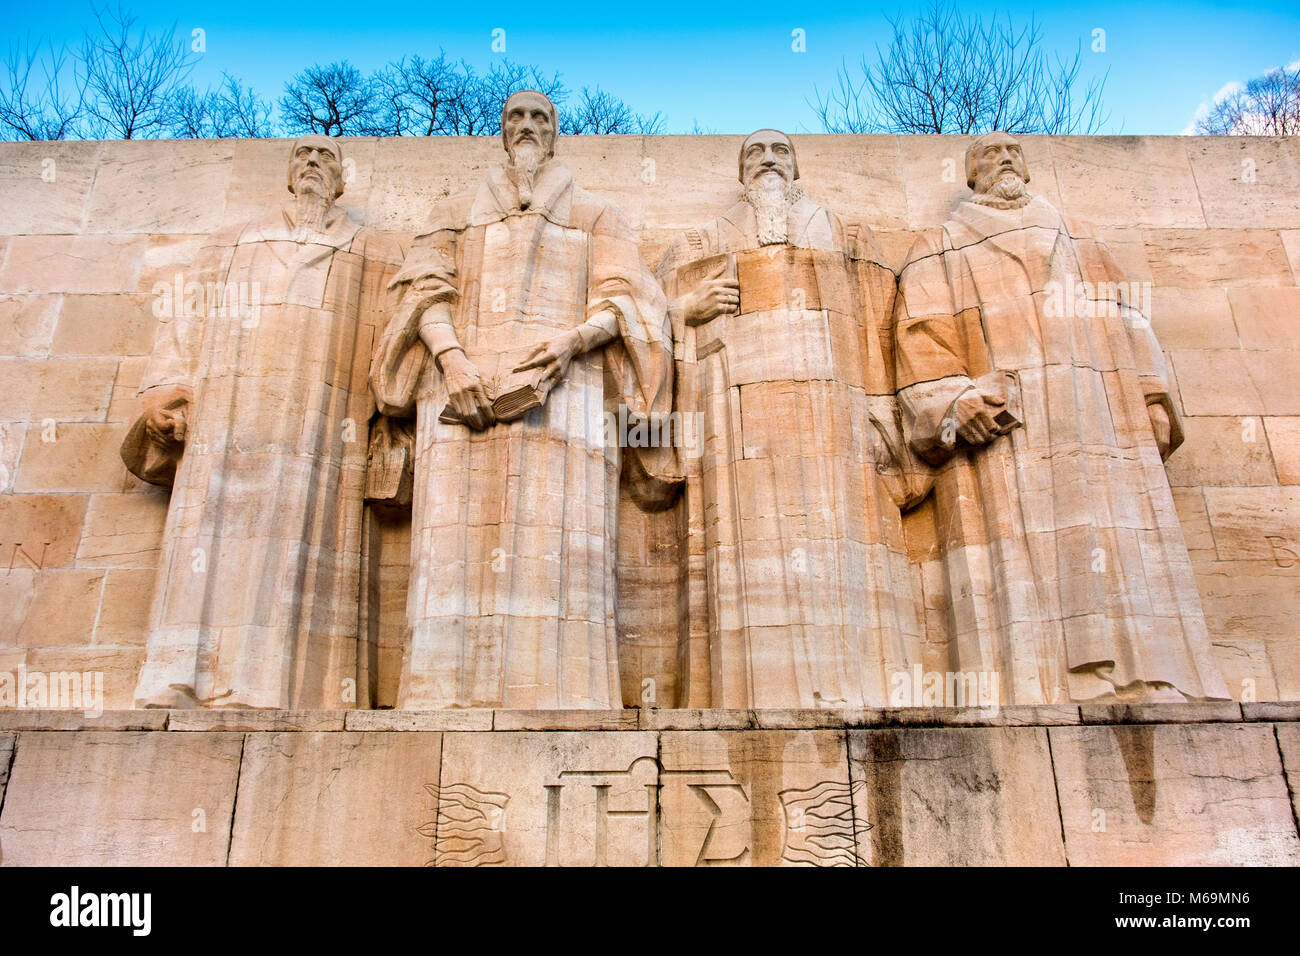 Reformation Wall Bastions Park. Guillaume Farel, Jean Calvin, Theodore de Bèze and John Knox, historic center. - Stock Image